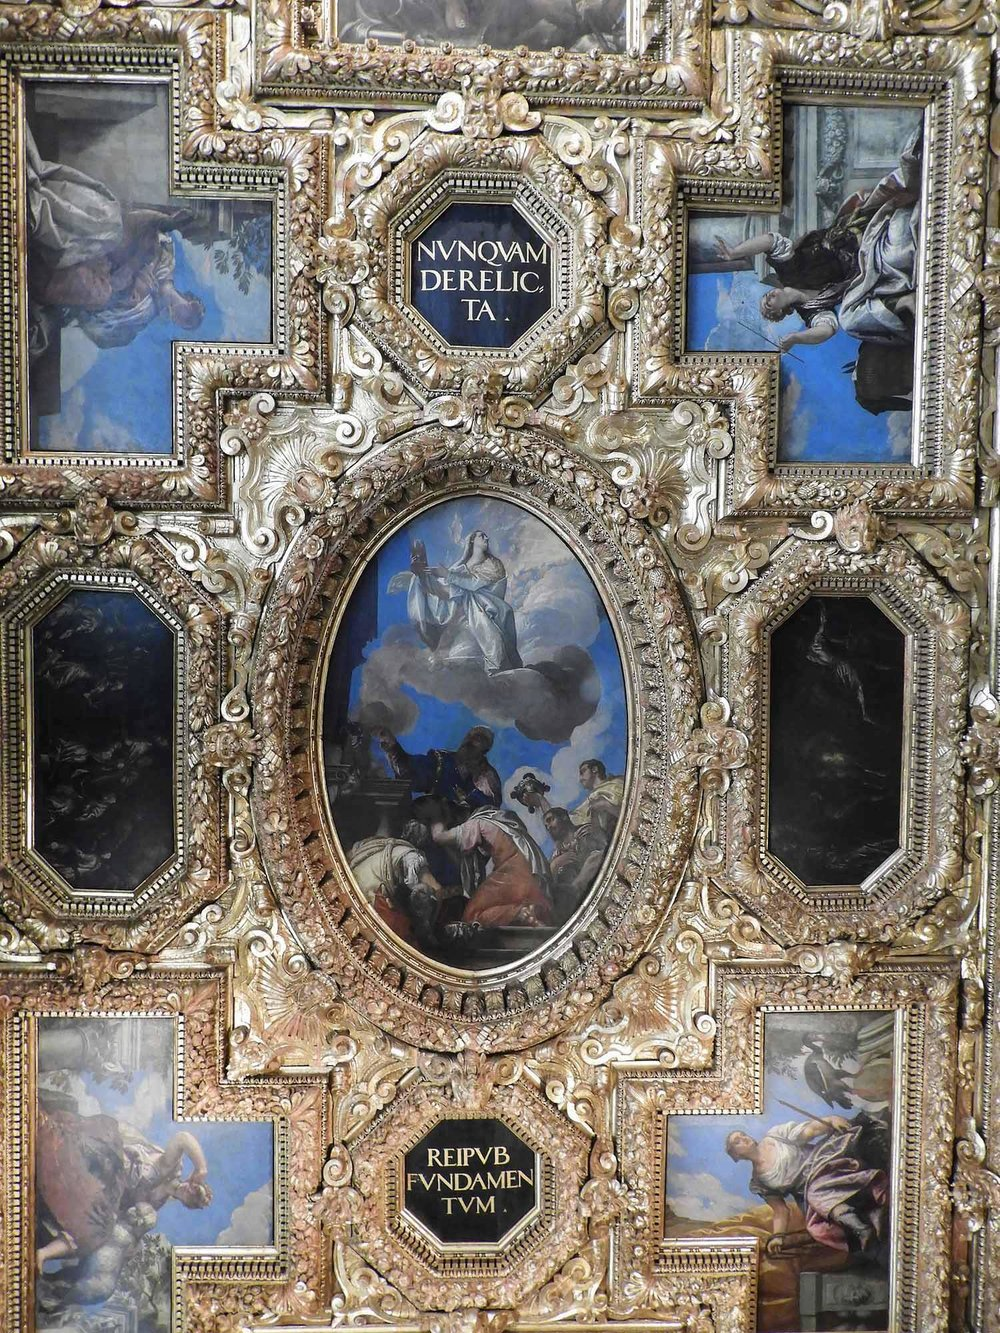 italy-italia-venice-palazzo-ducale-ceiling painting-gold.jpg